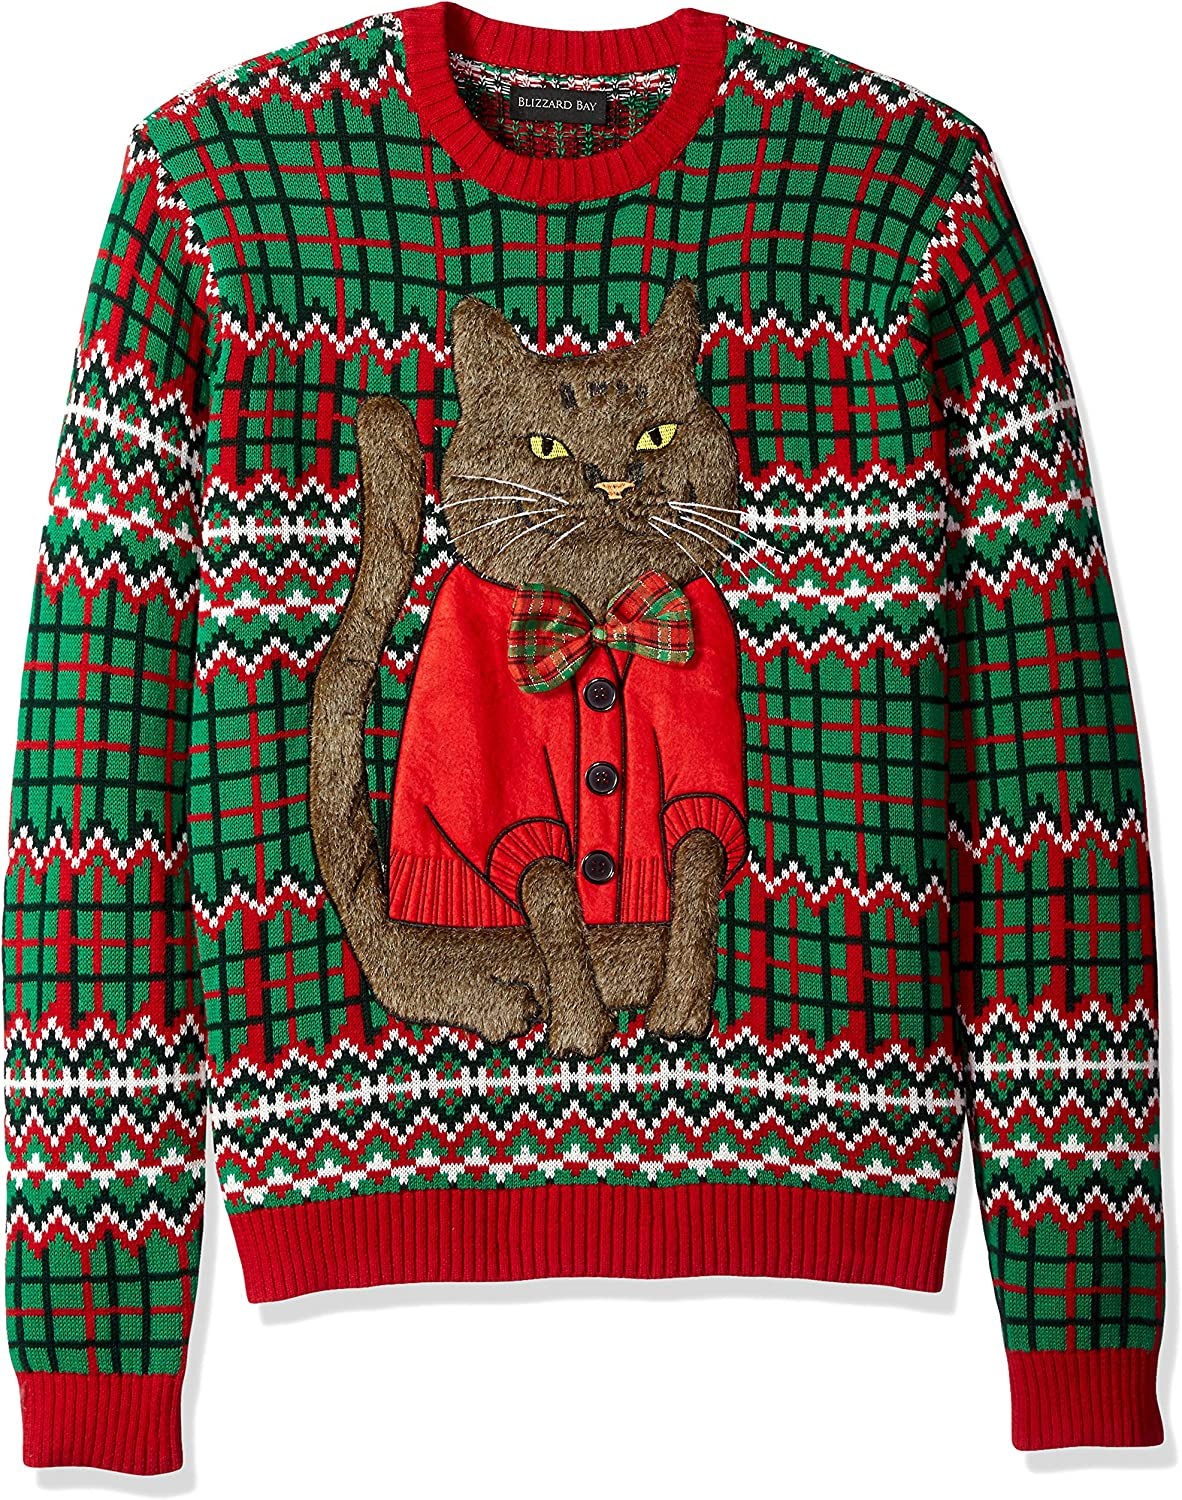 Blizzard Bay Men's OFFicial store Ugly Sweater Christmas Cat Award-winning store